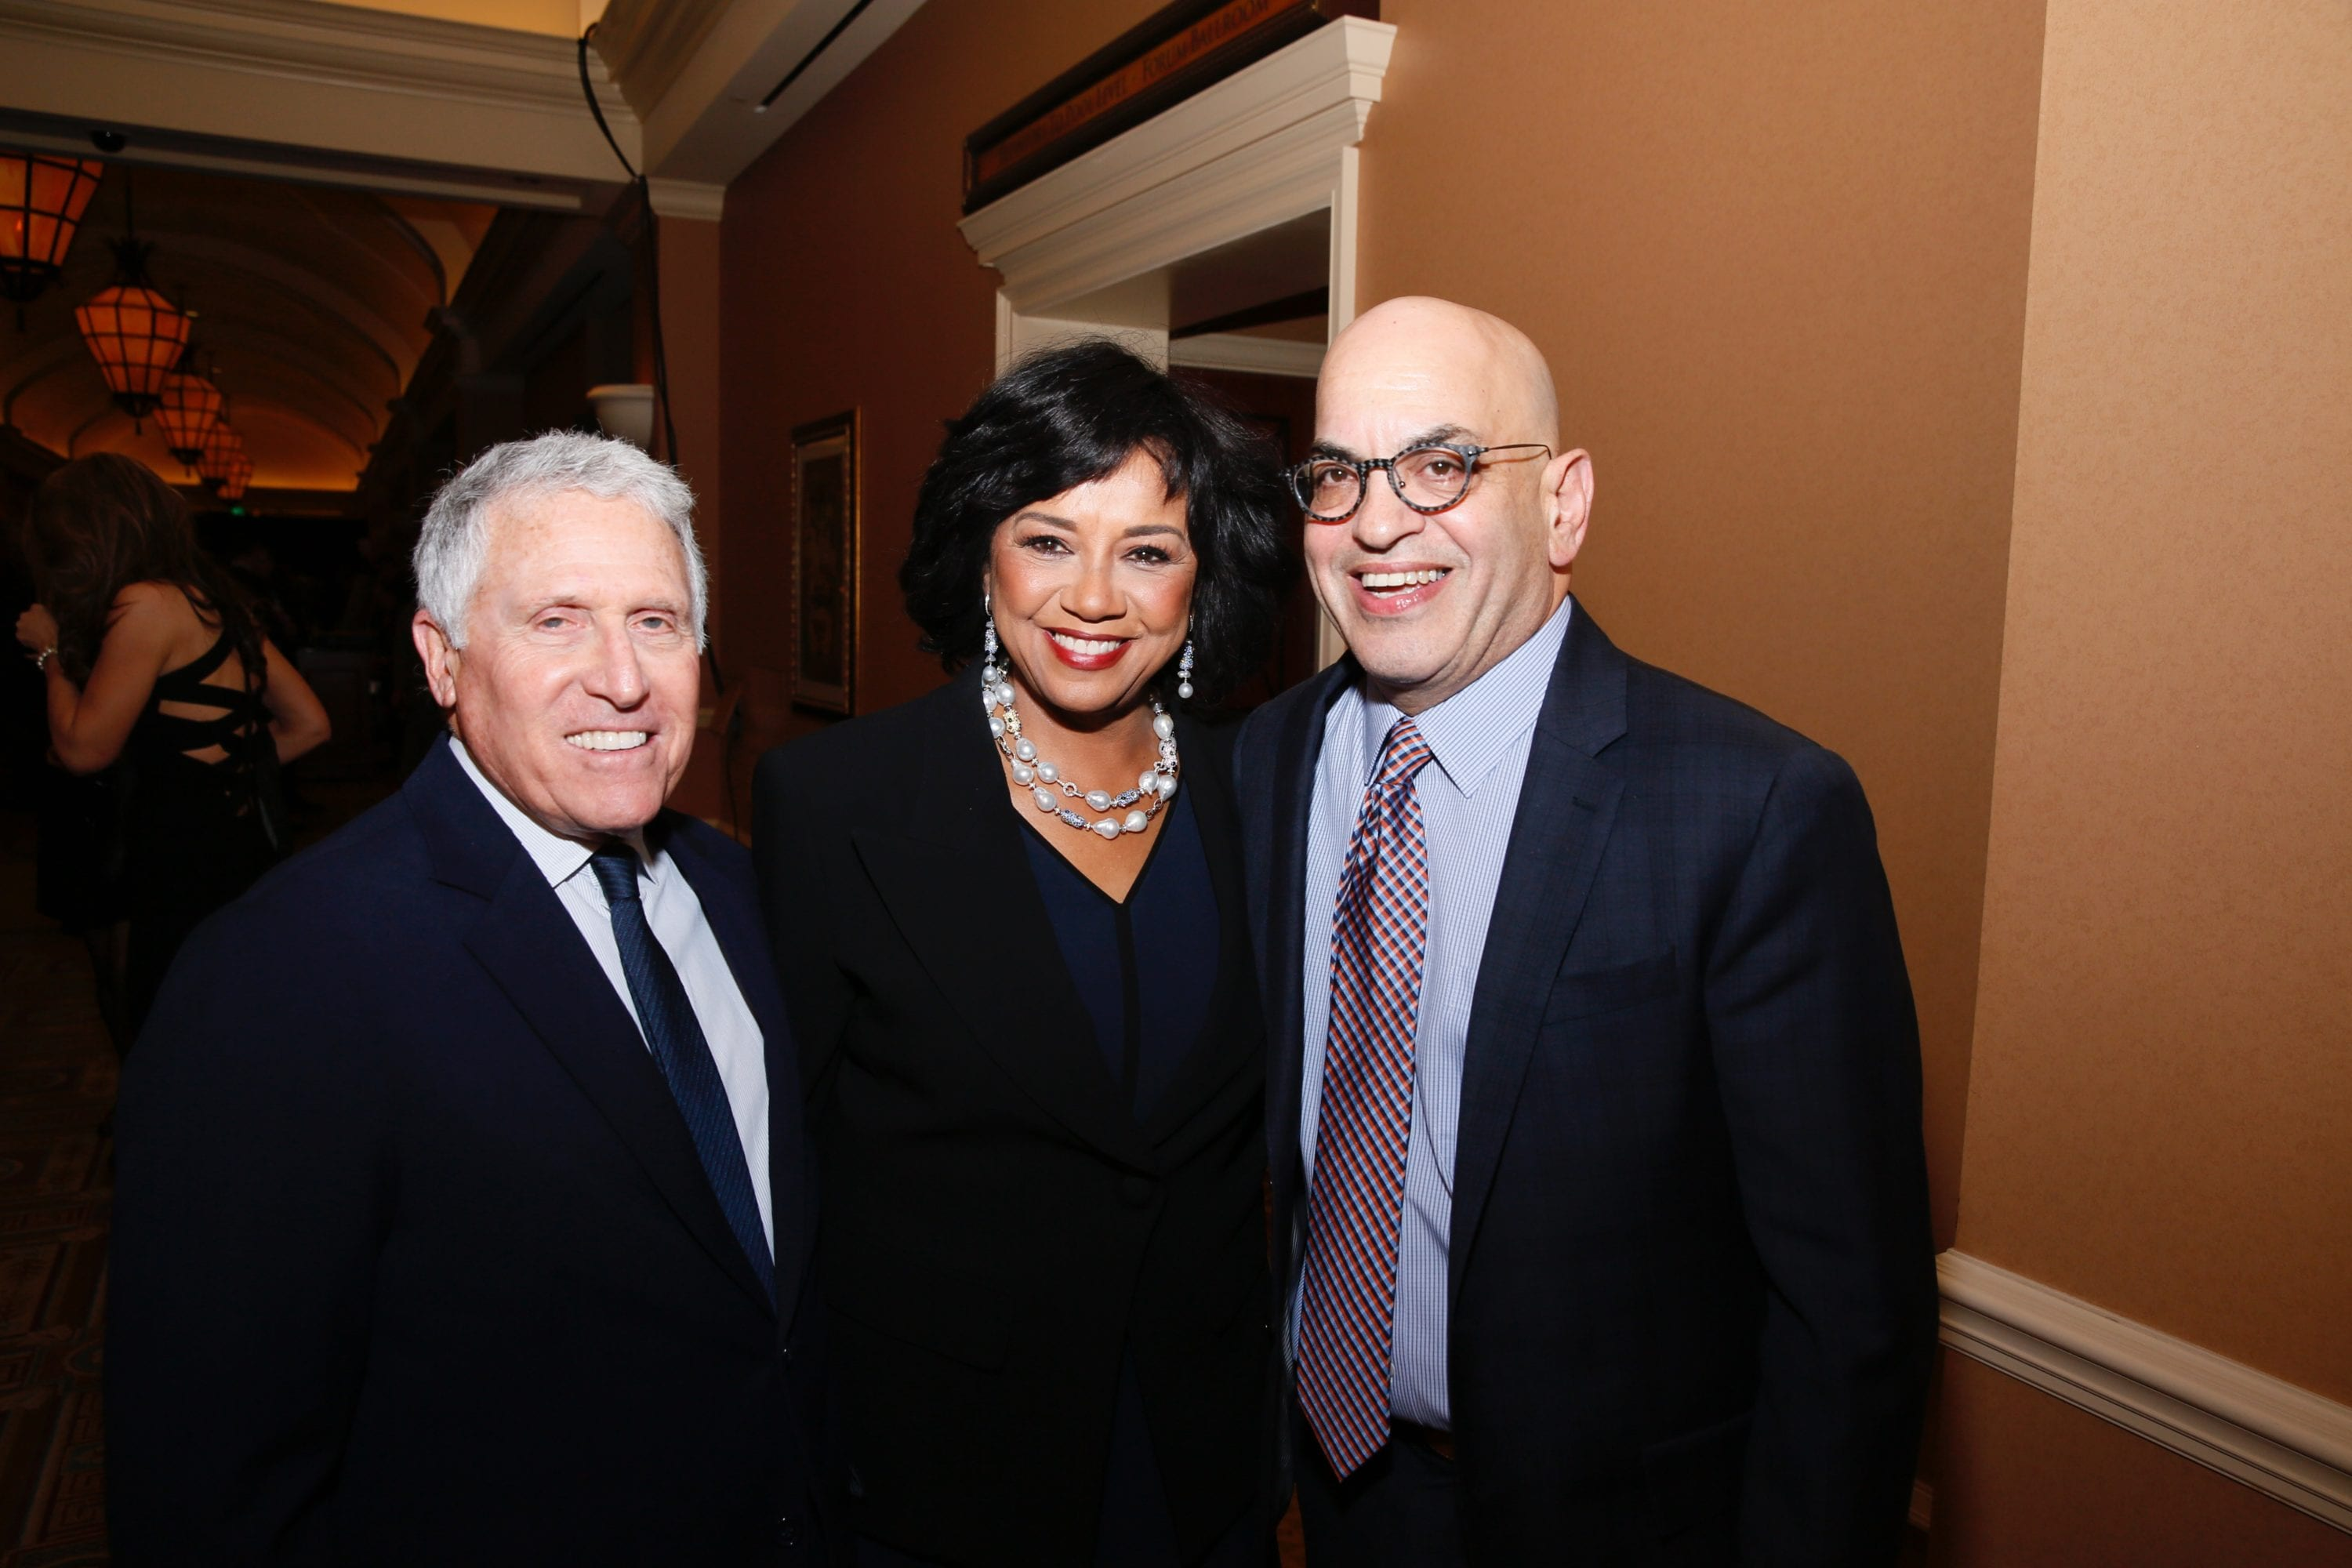 Pioneer of the Year Dinner honoring Cheryl Boone Isaacs  at CinemaCon 2017